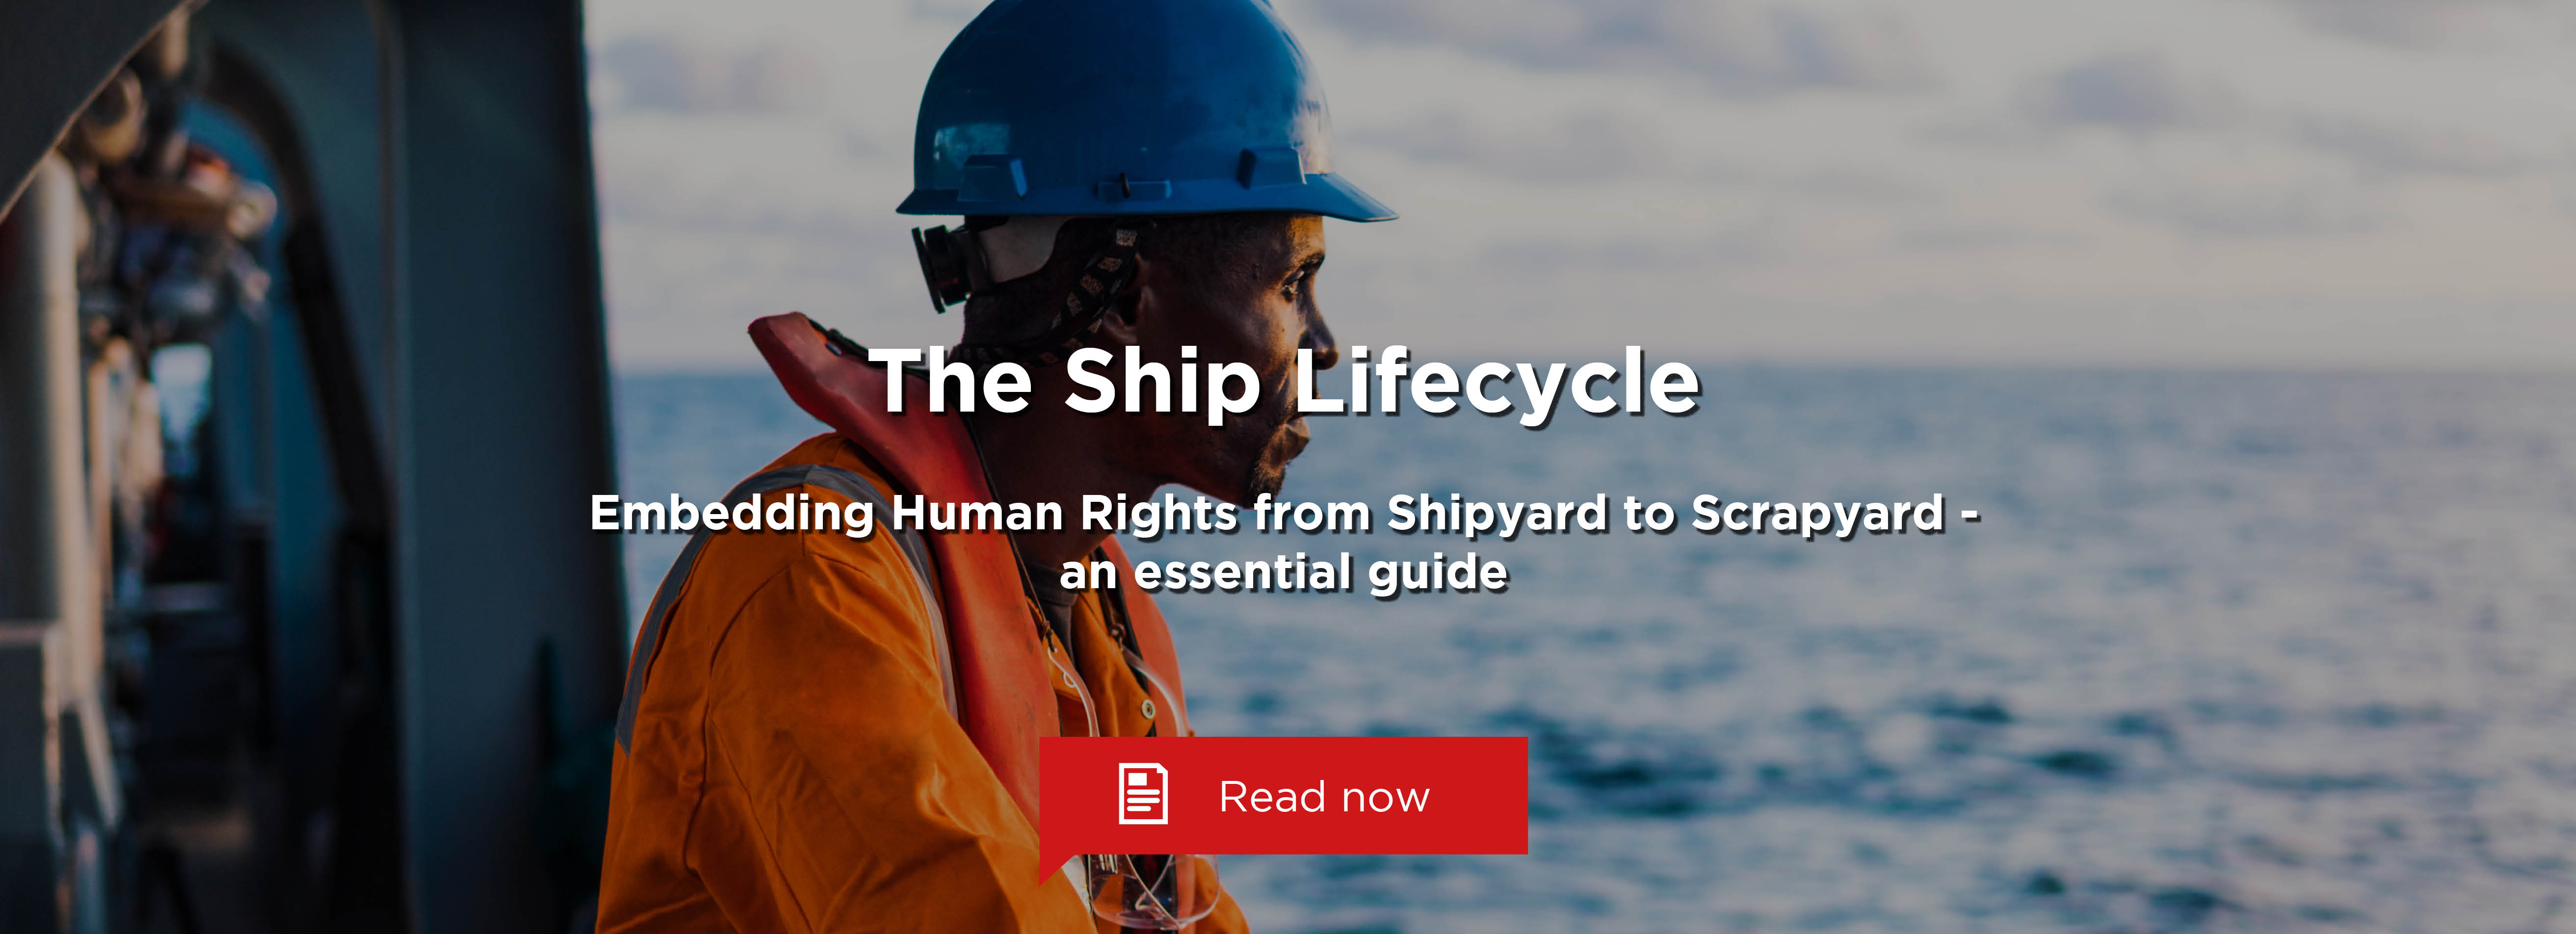 Embedding Human Rights from Shipyard to Scrapyard